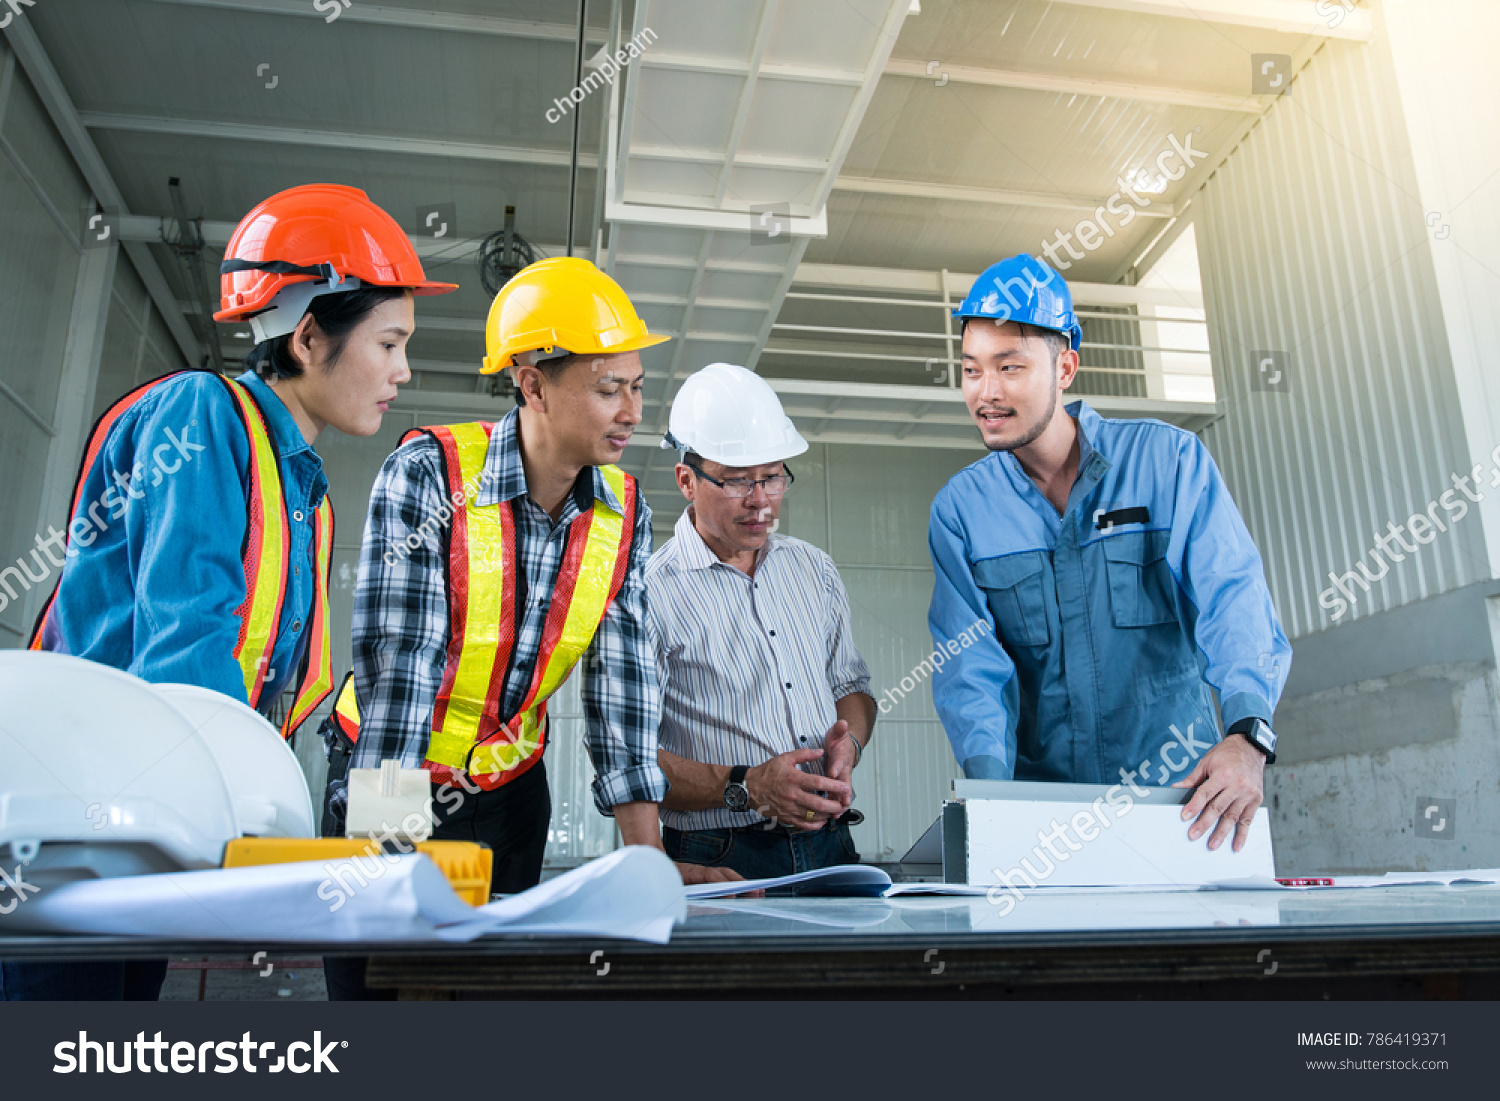 Engineer group meeting hardhats discussion construction stock photo engineer group meeting hardhats discussion construction stock photo royalty free 786419371 shutterstock malvernweather Images